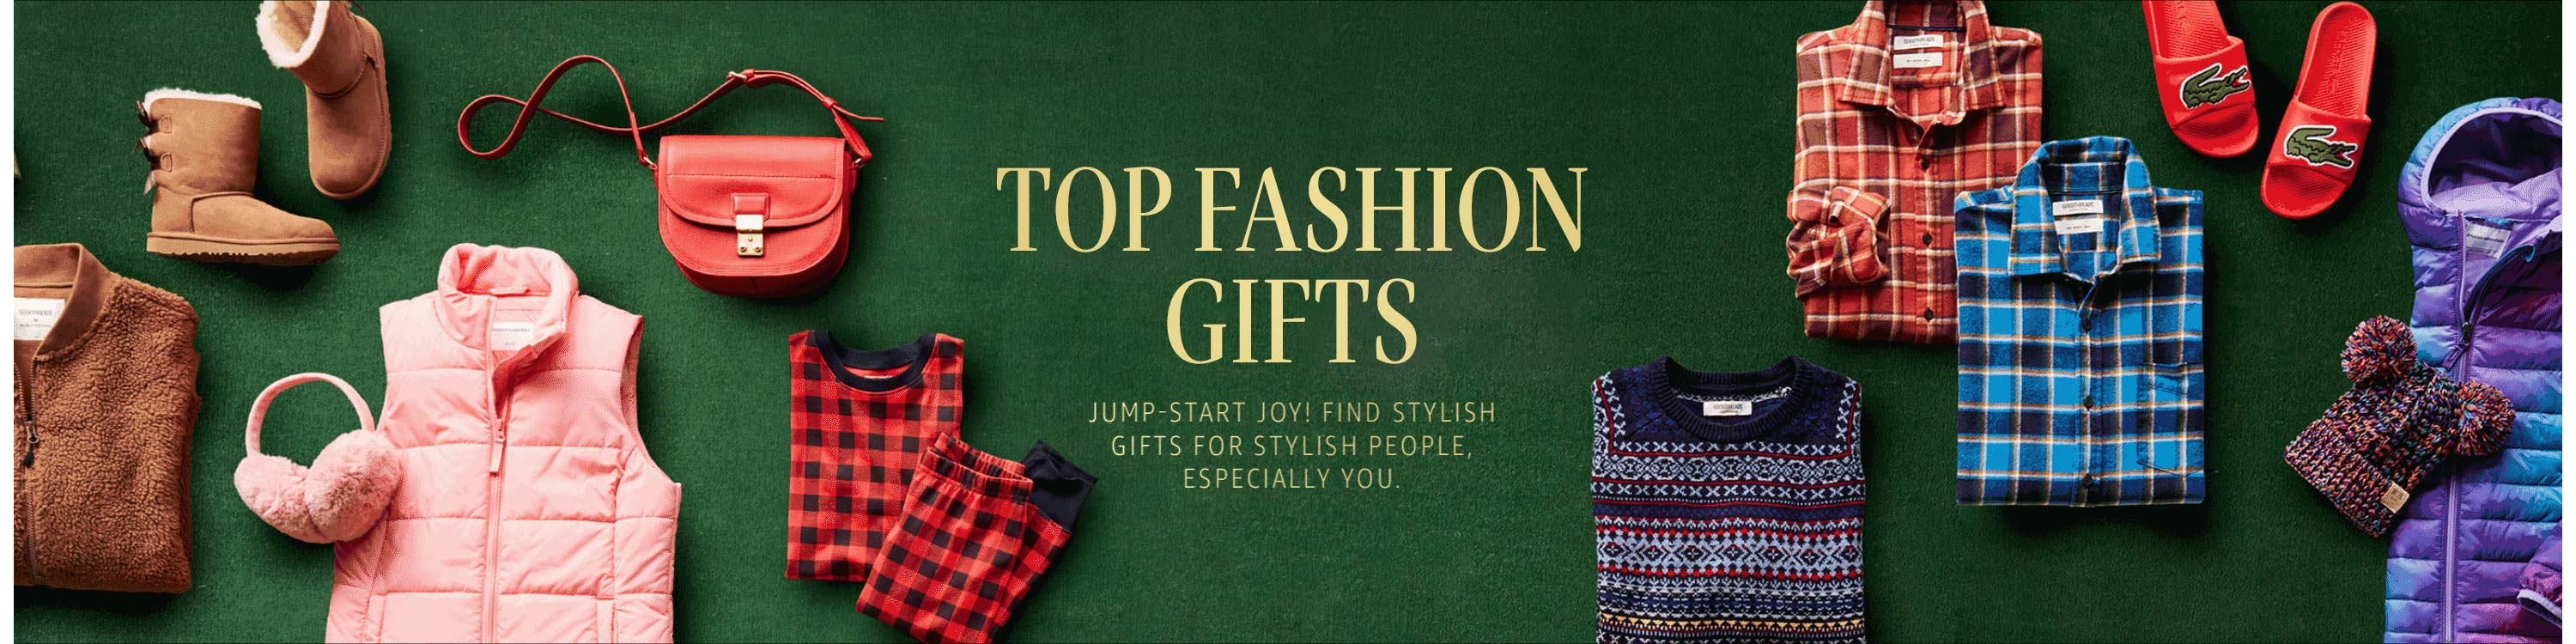 Top Fashion Gifts